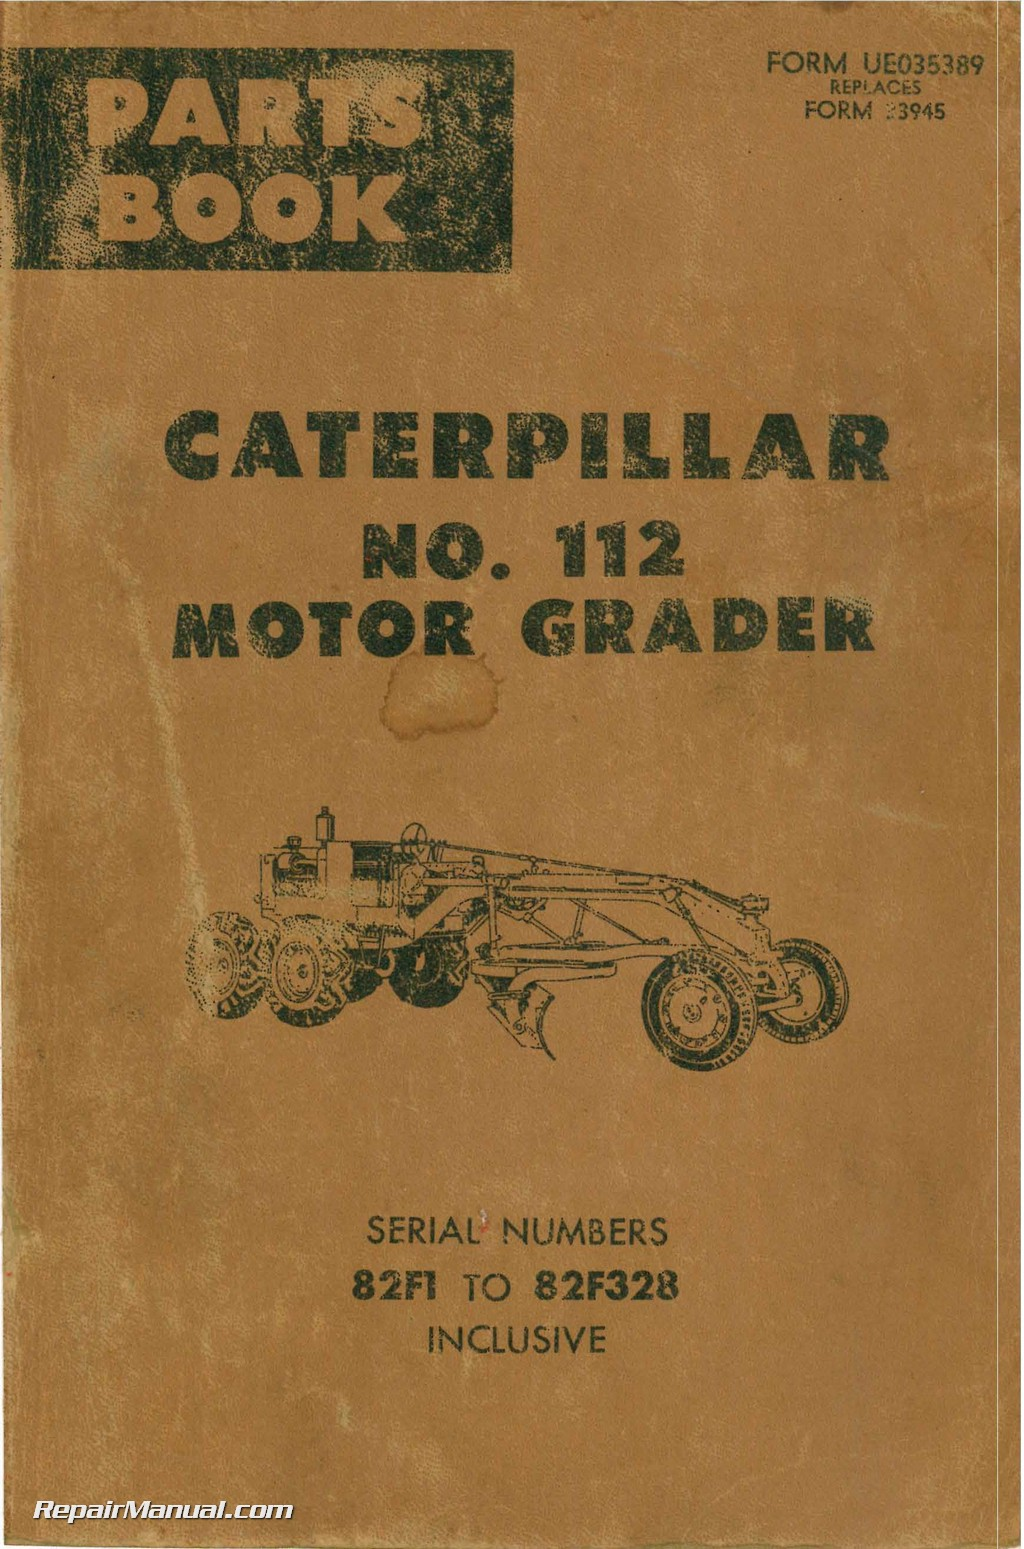 Caterpillar 112 Motor Grader Parts Manual